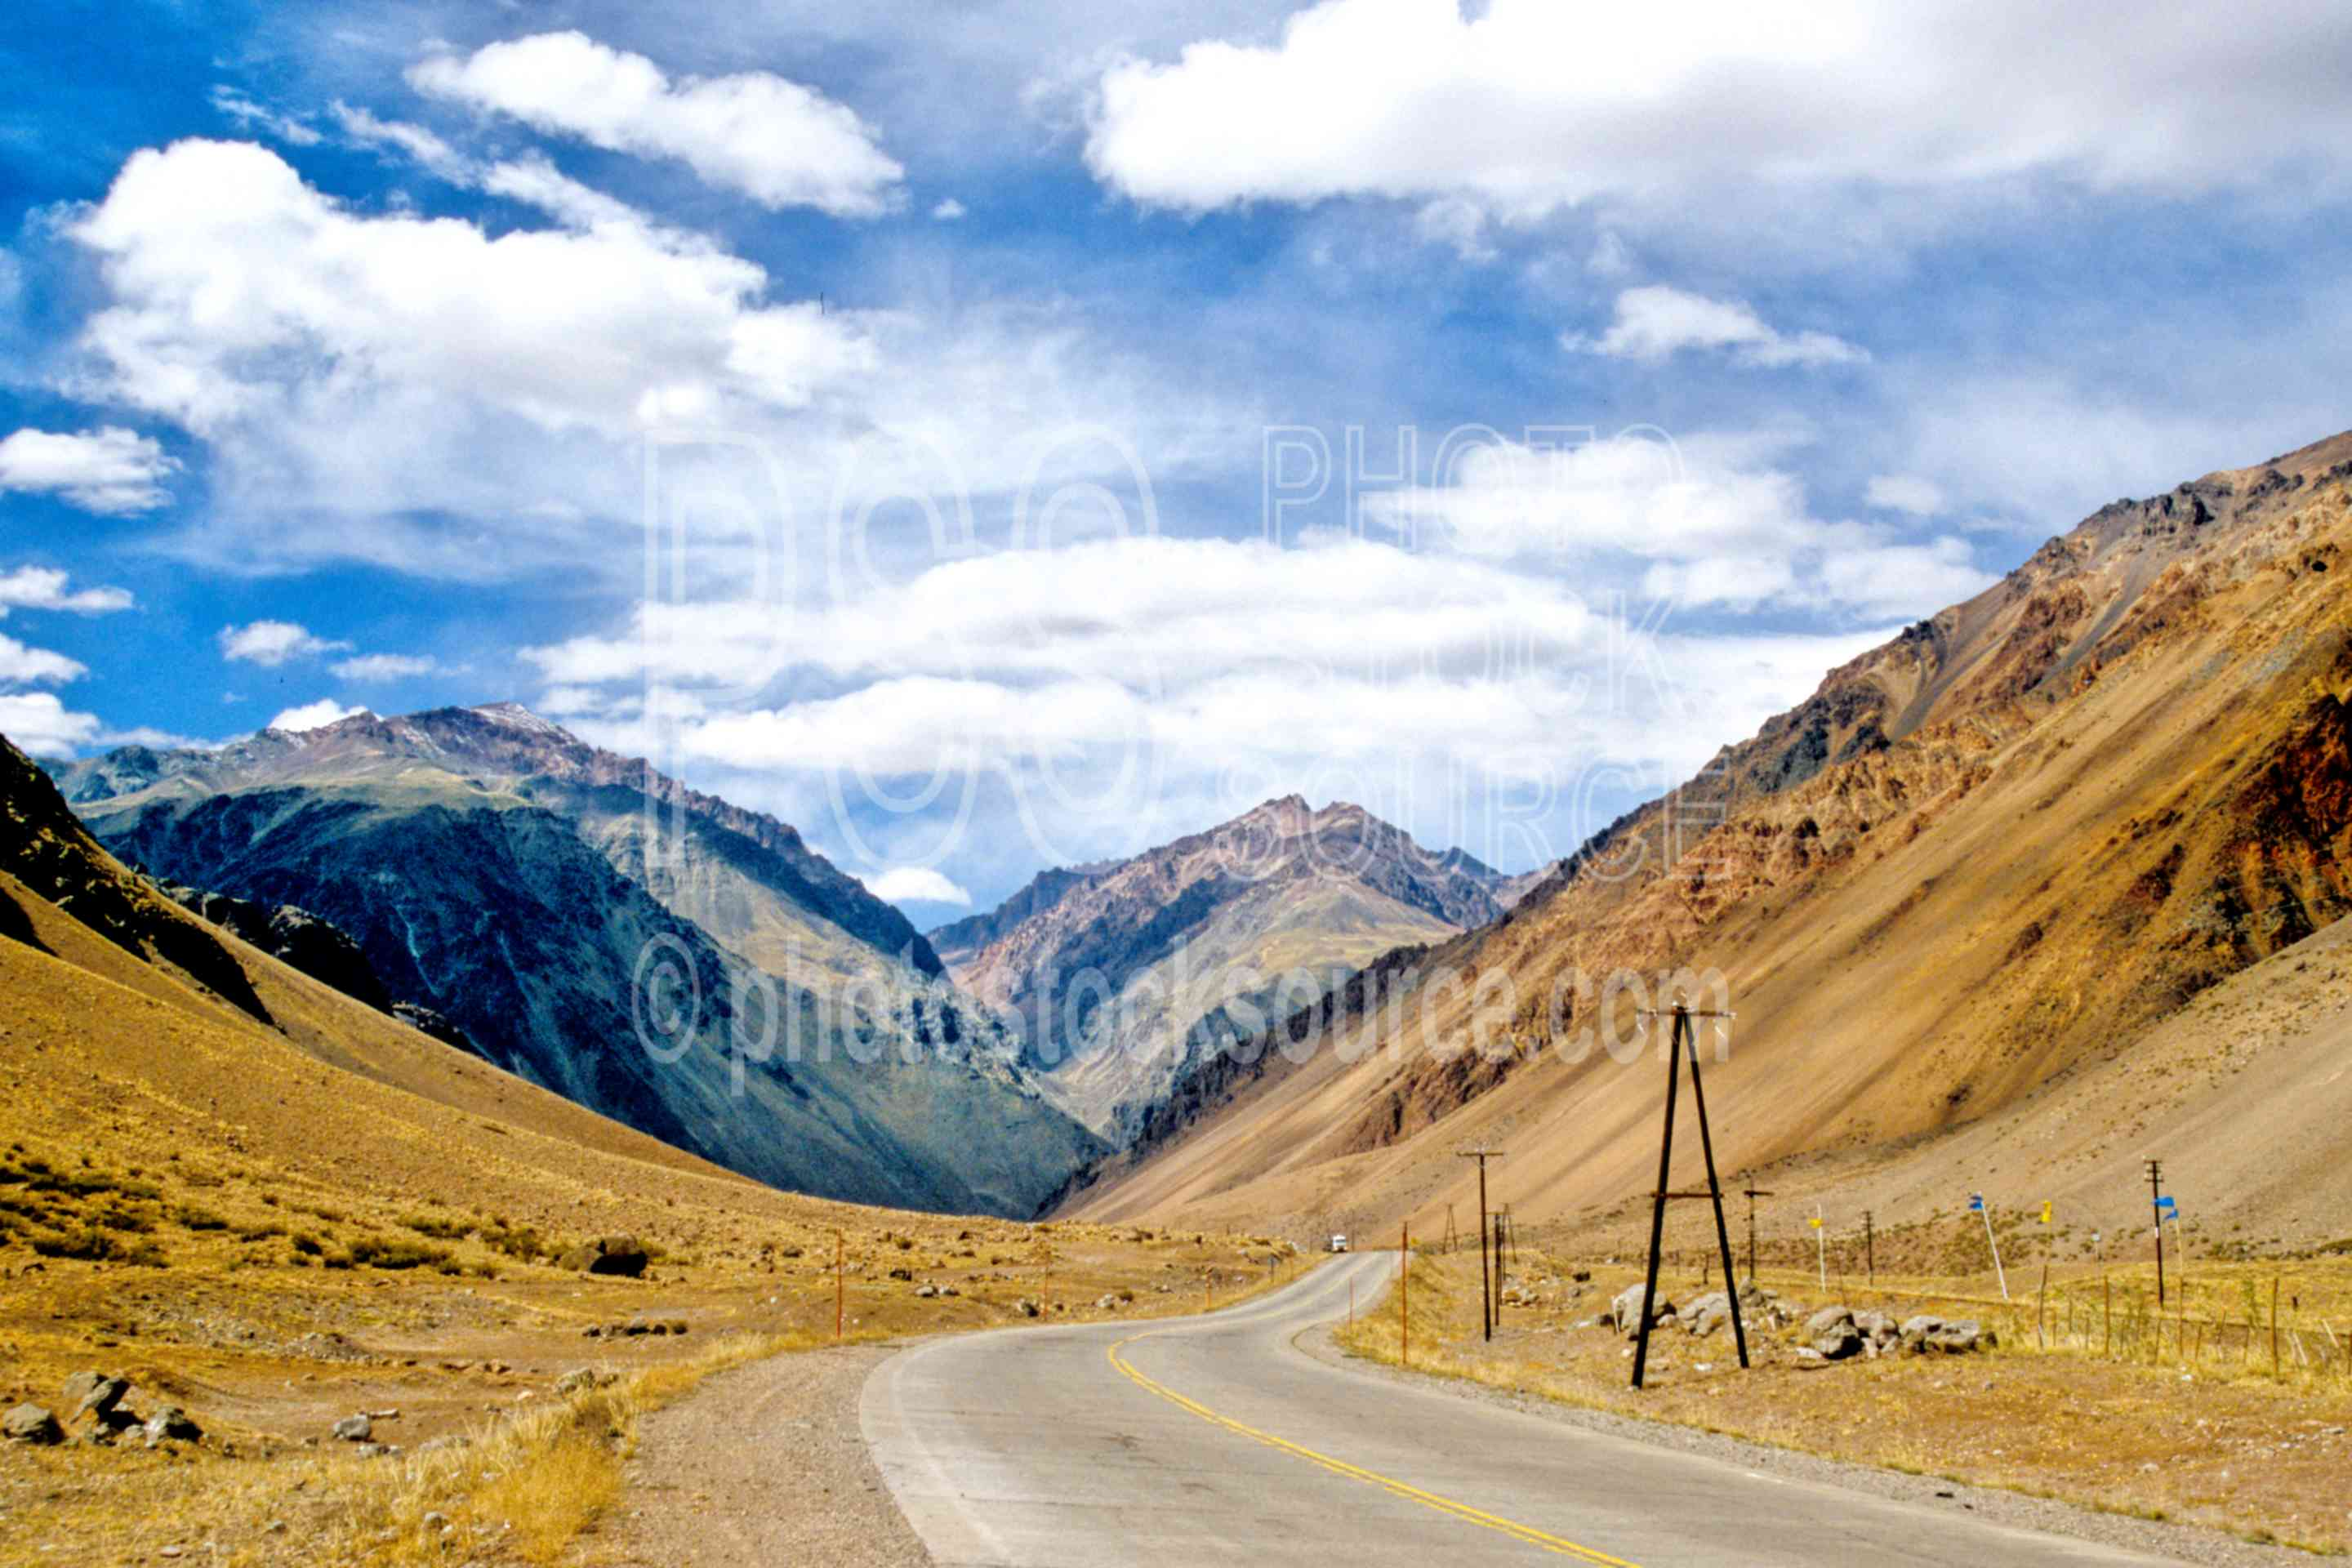 Route 7 to Chile,road,highway,nature,mountains